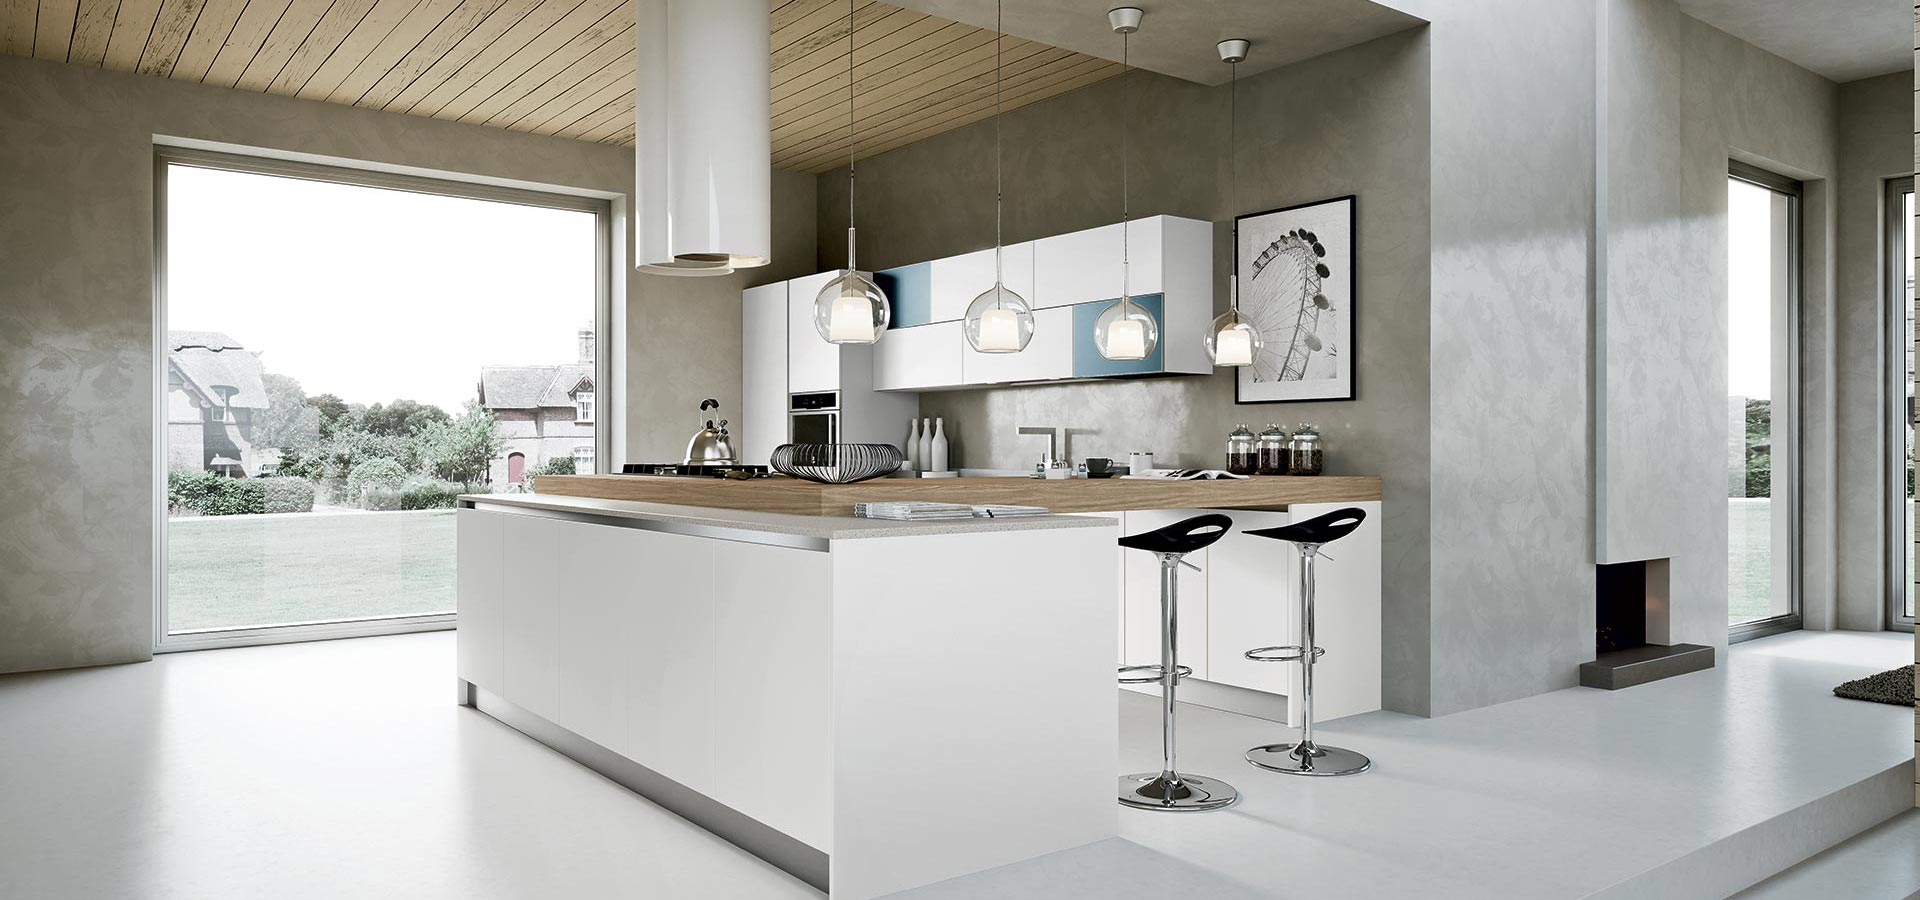 white kitchen units are totally stylish, especially when teamed with a striking handle detail.